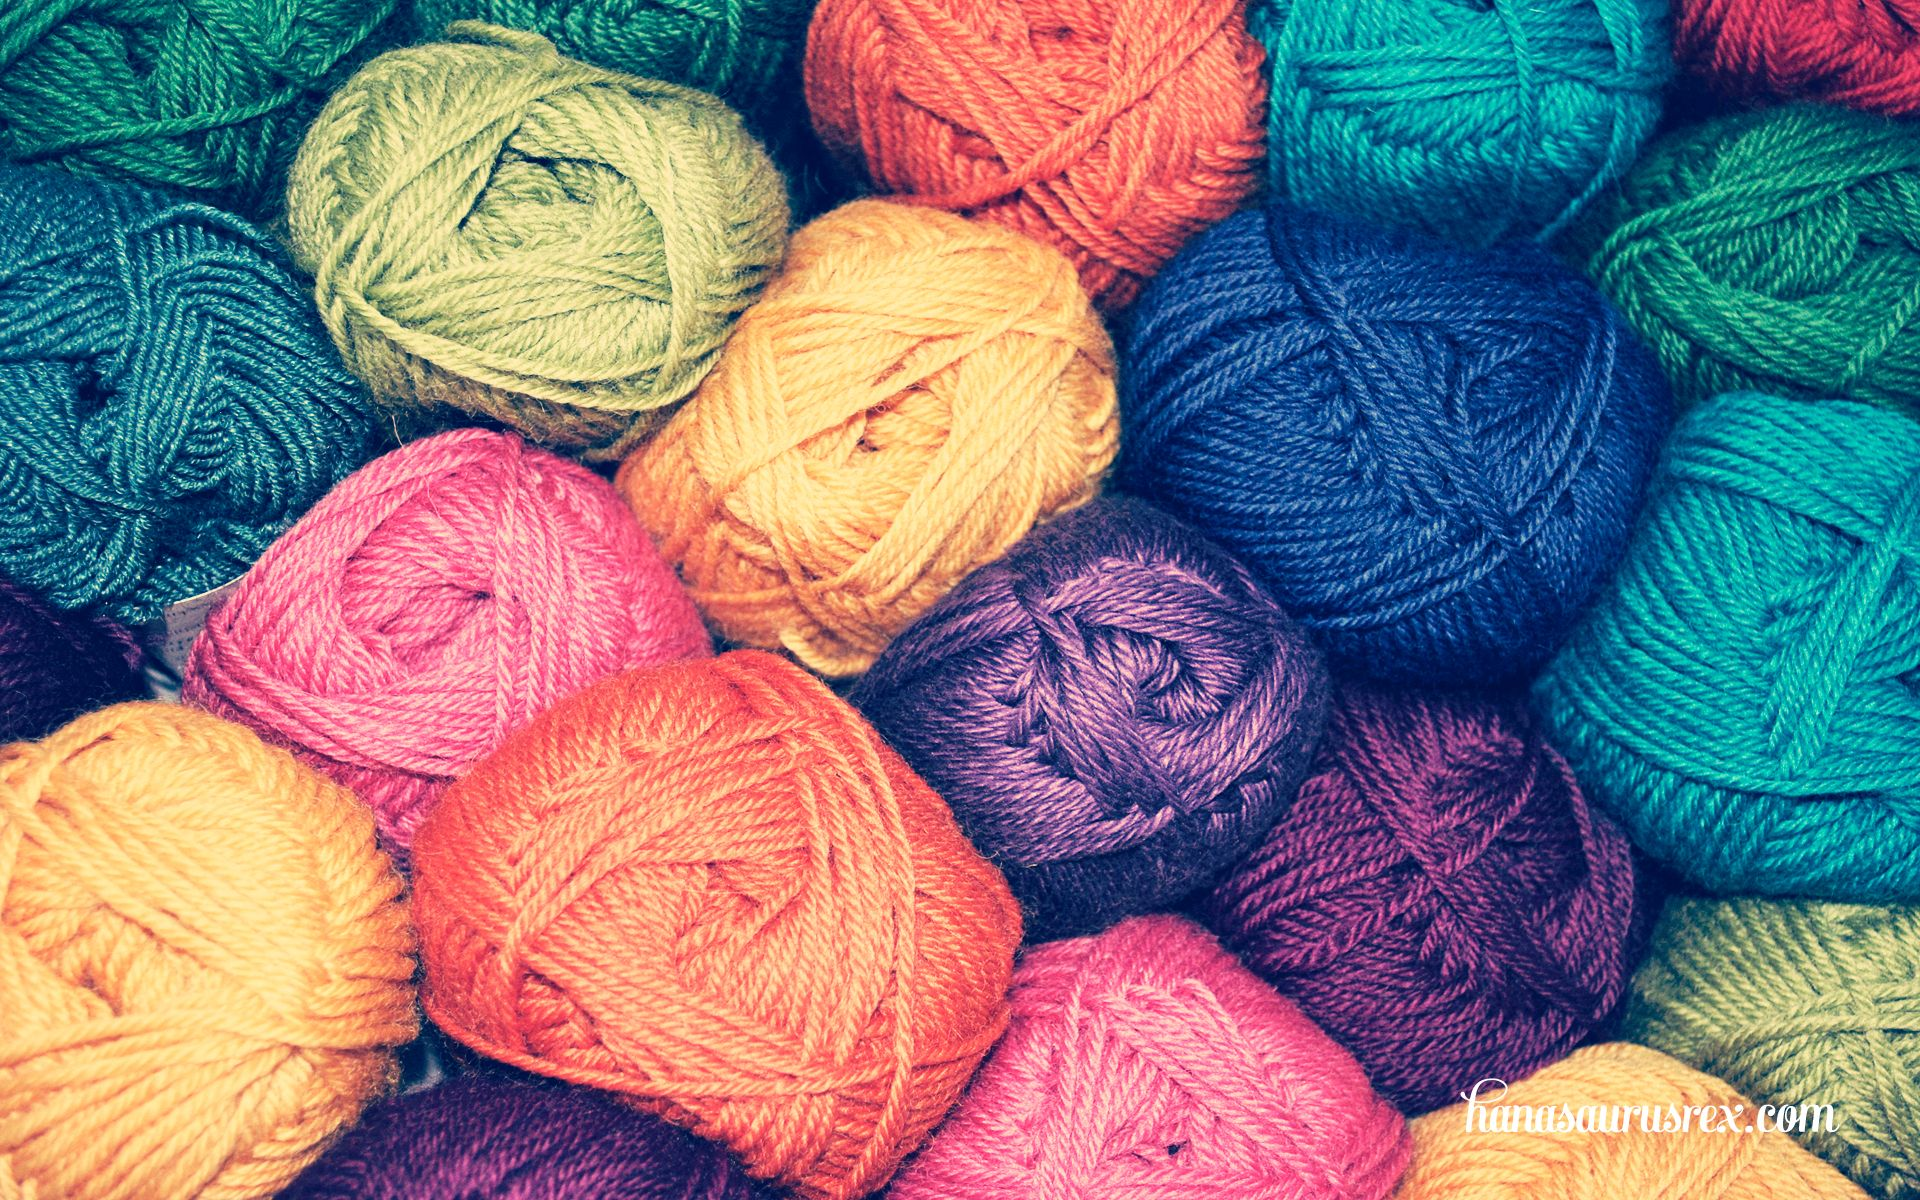 Crochet Fridays - Crocheters in Central CT (Plainville, CT) Meetup